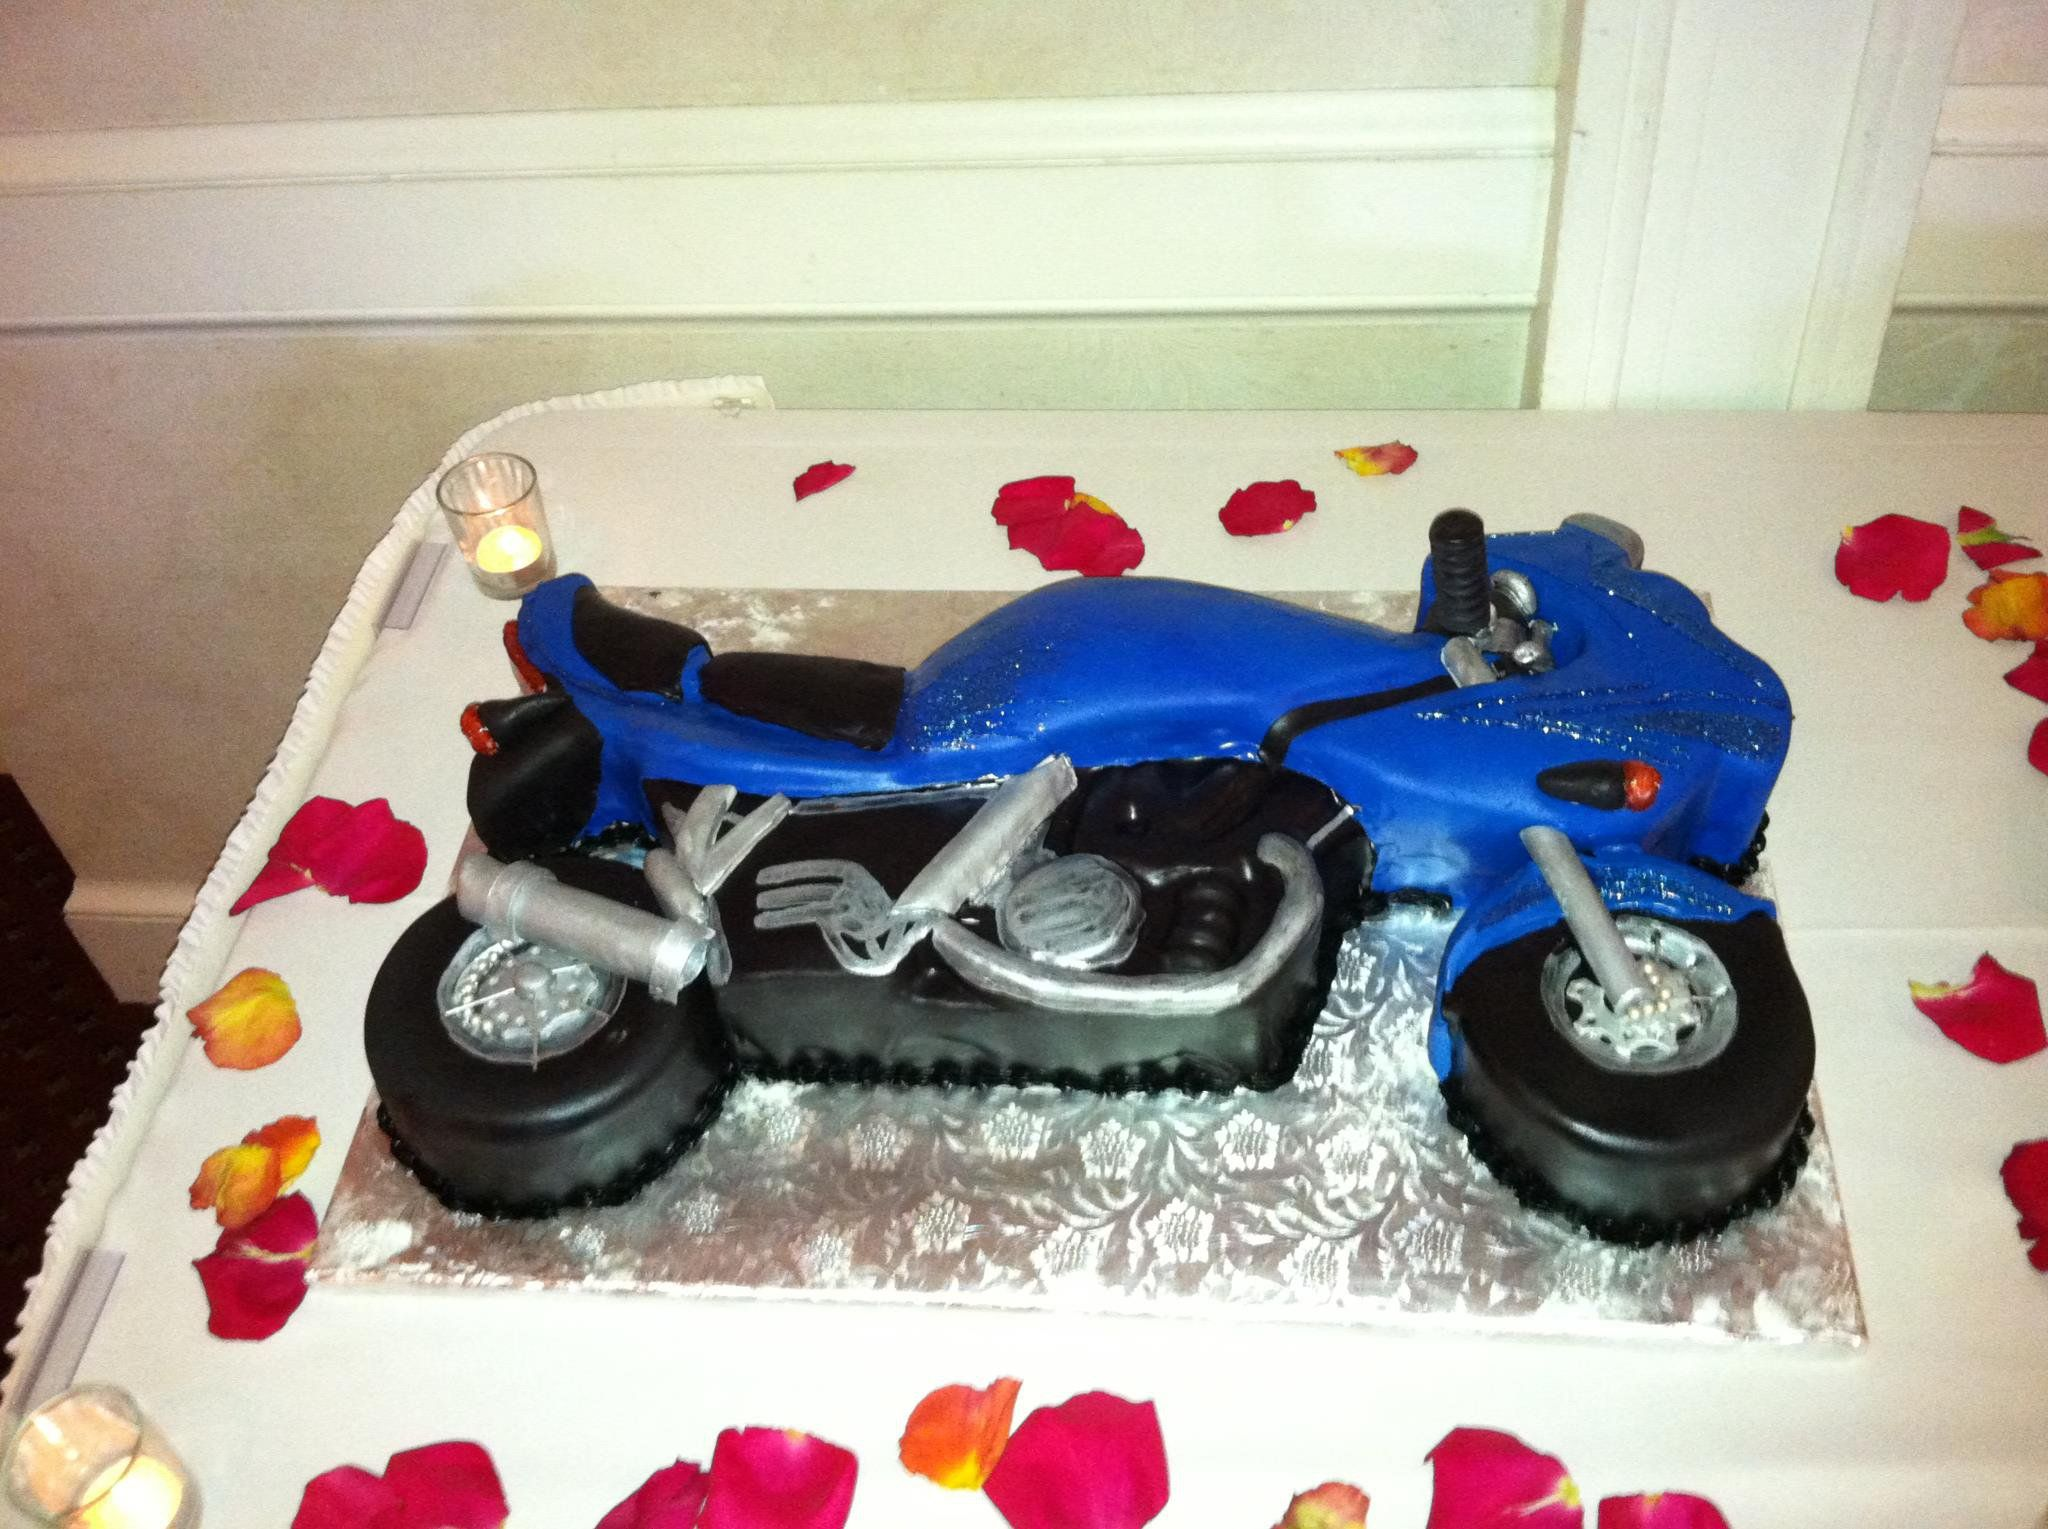 Carved Motorcycle Cake Toy Car Motorcycle Cake Motorcycle